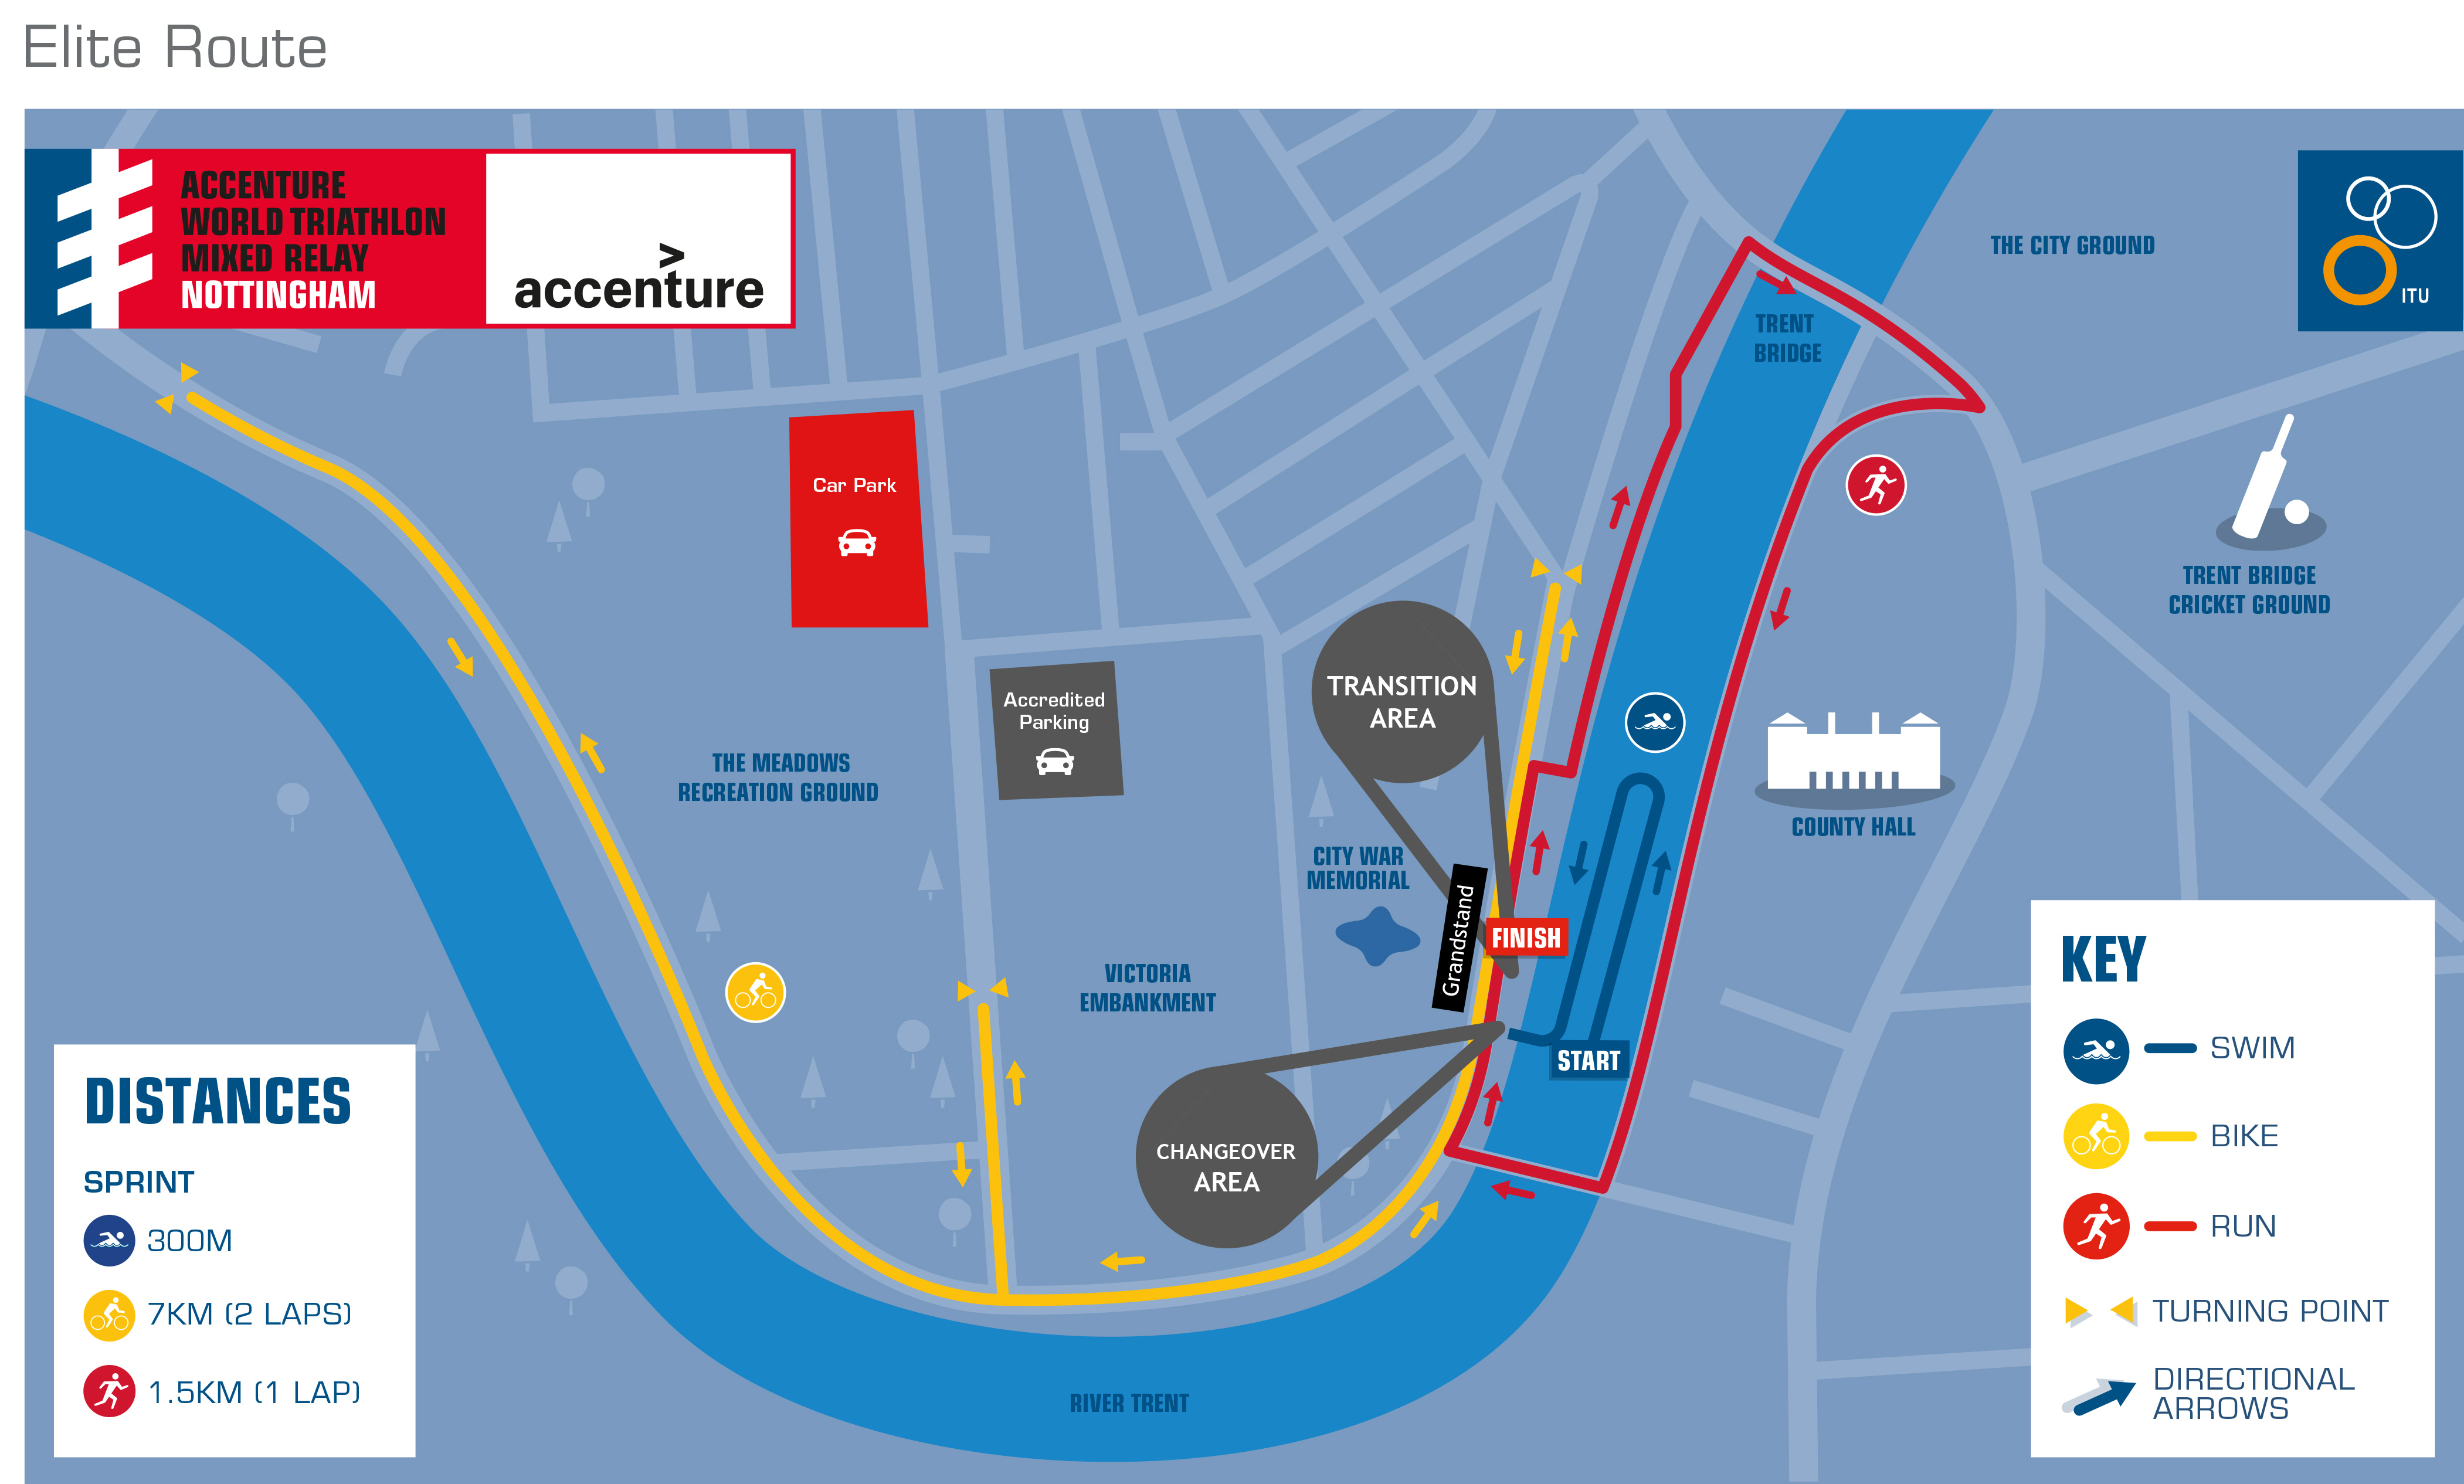 Course Maps - Accenture World Triathlon Mixed Relay Nottingham